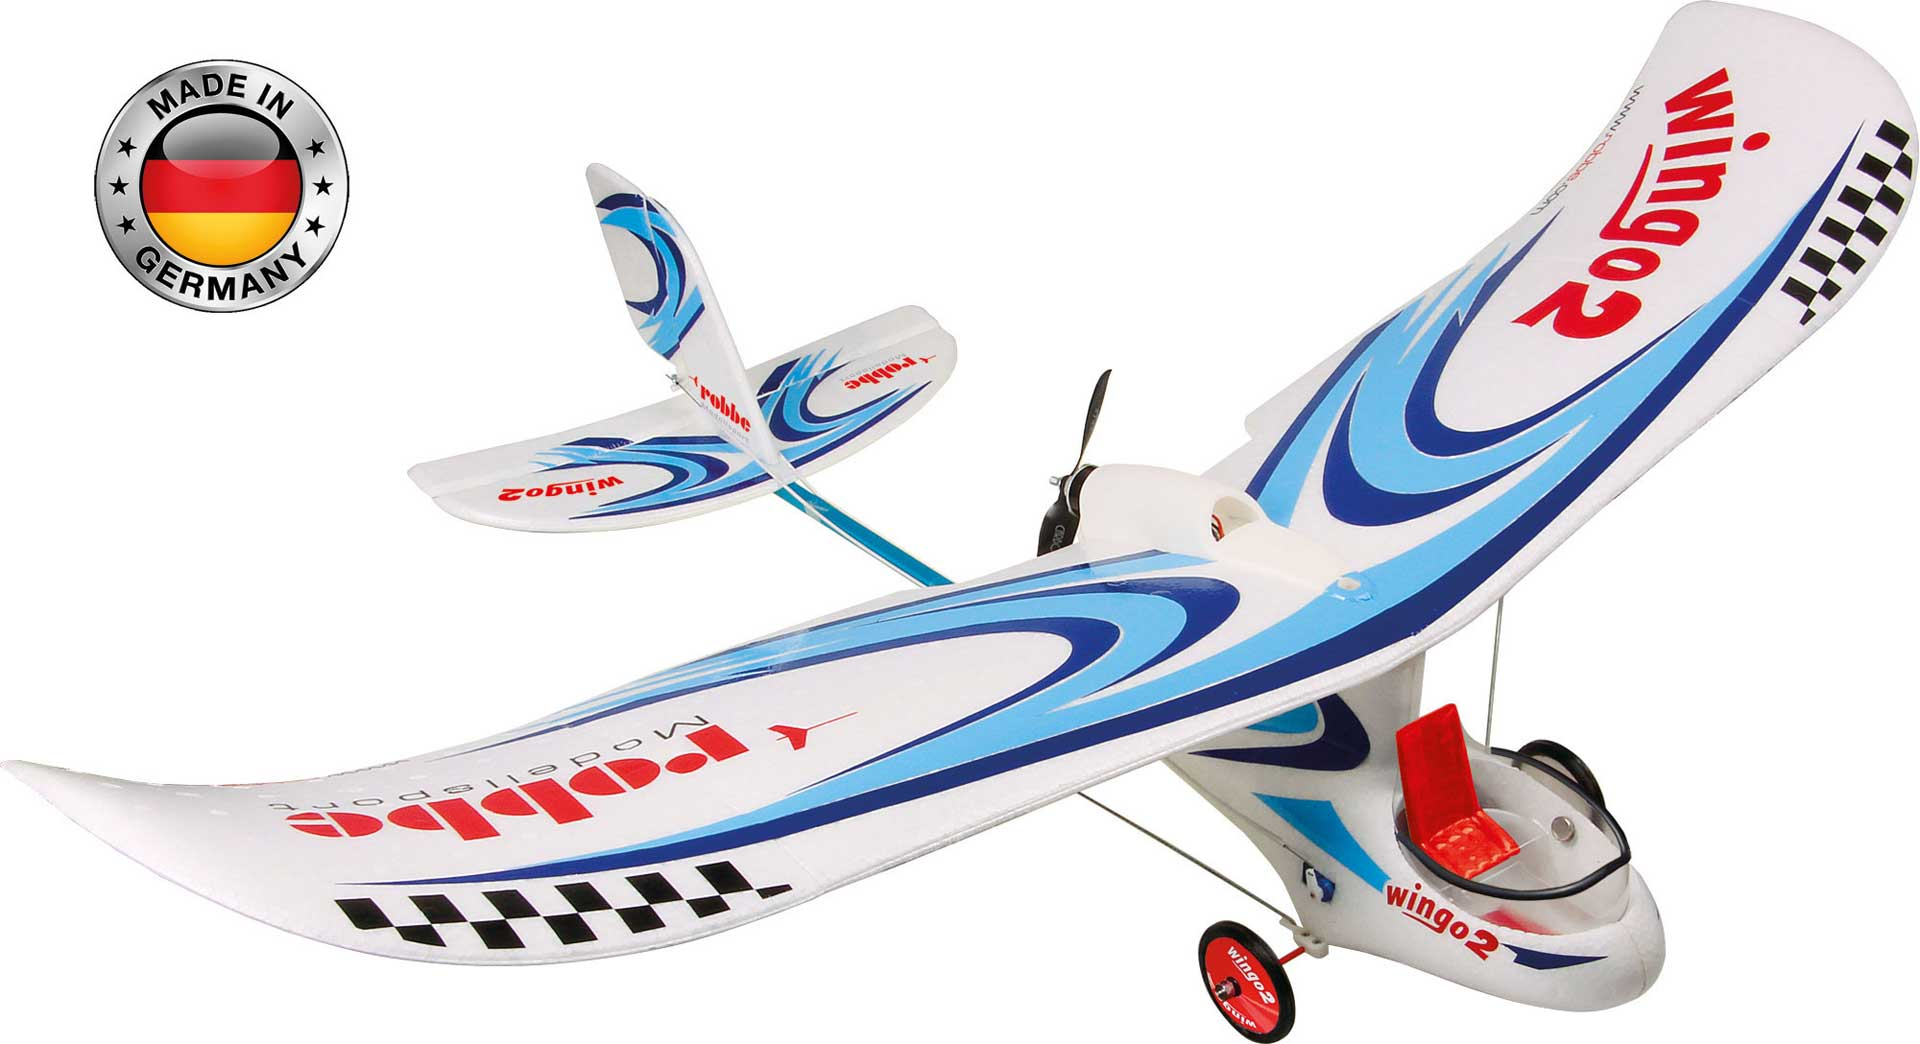 "ROBBE WINGO 2 KIT ""YOU CAN FLY"" WITH BRUSHLESS MOTOR, ESC AND SERVOS"